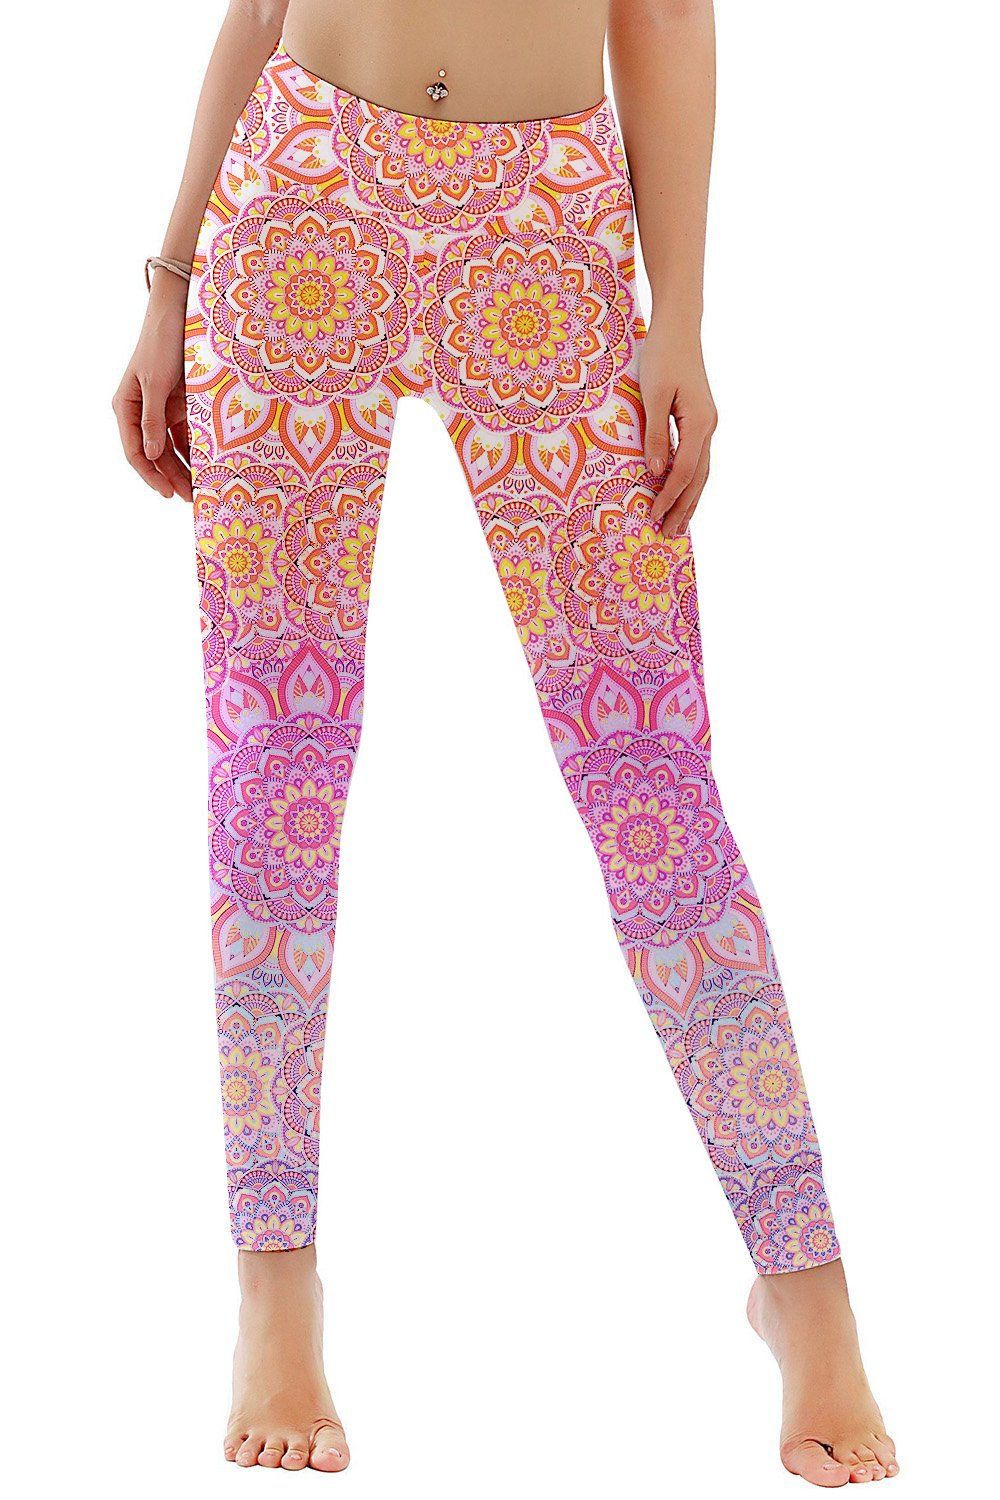 TUONROAD High Waist Printed Leggings Tummy Control Fitness Active Workout Running Jogging Gym Yoga Pants Activewear (Flower-1, S)